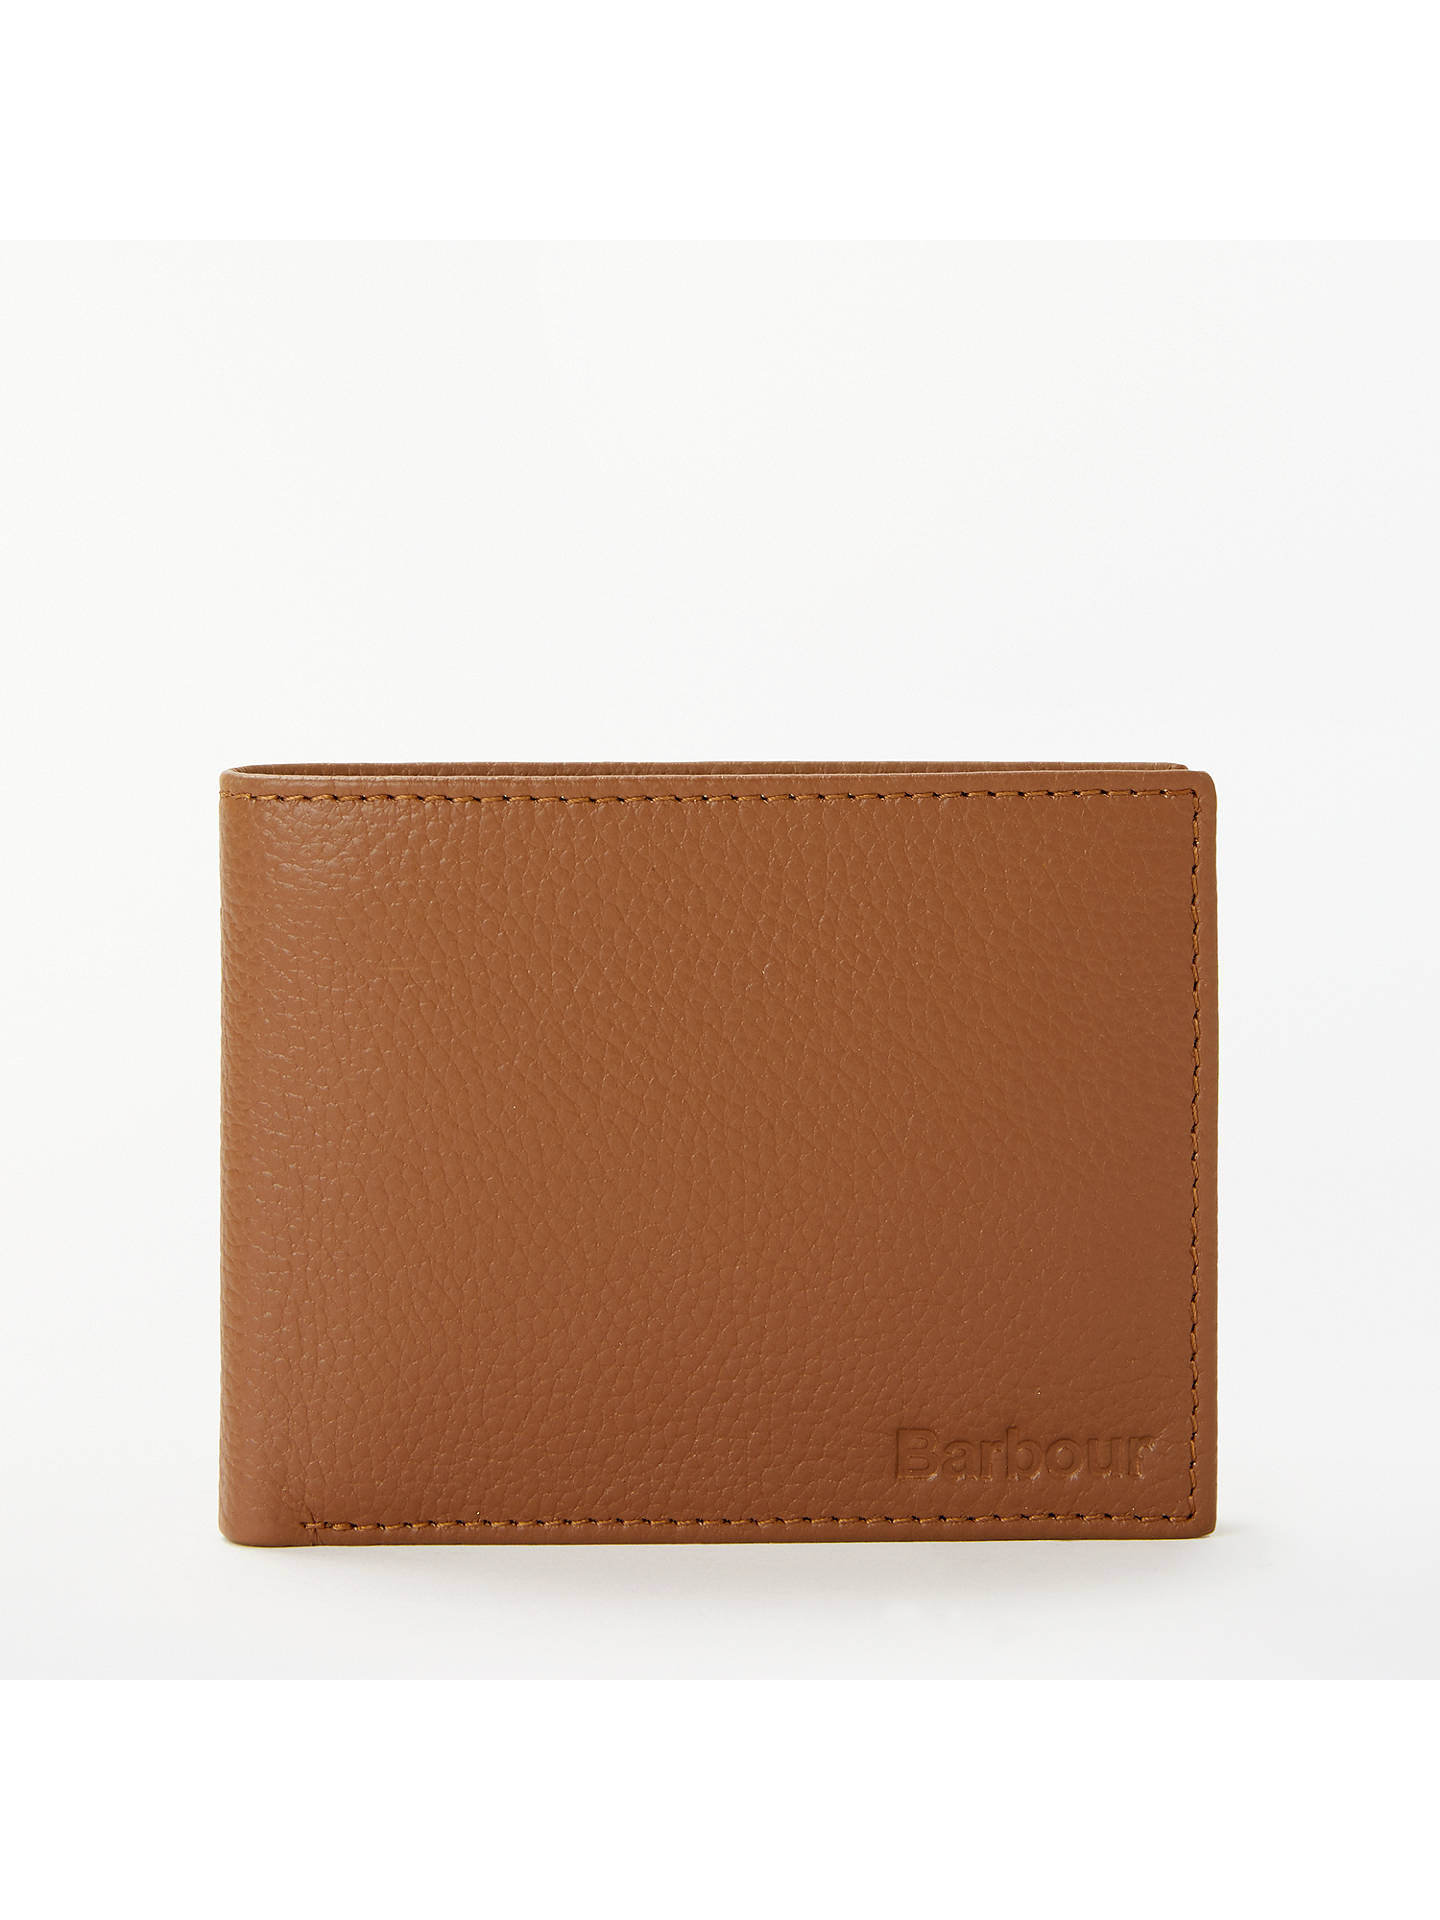 BuyBarbour Leather Wallet Card ID Wallet, Tan Online at johnlewis.com